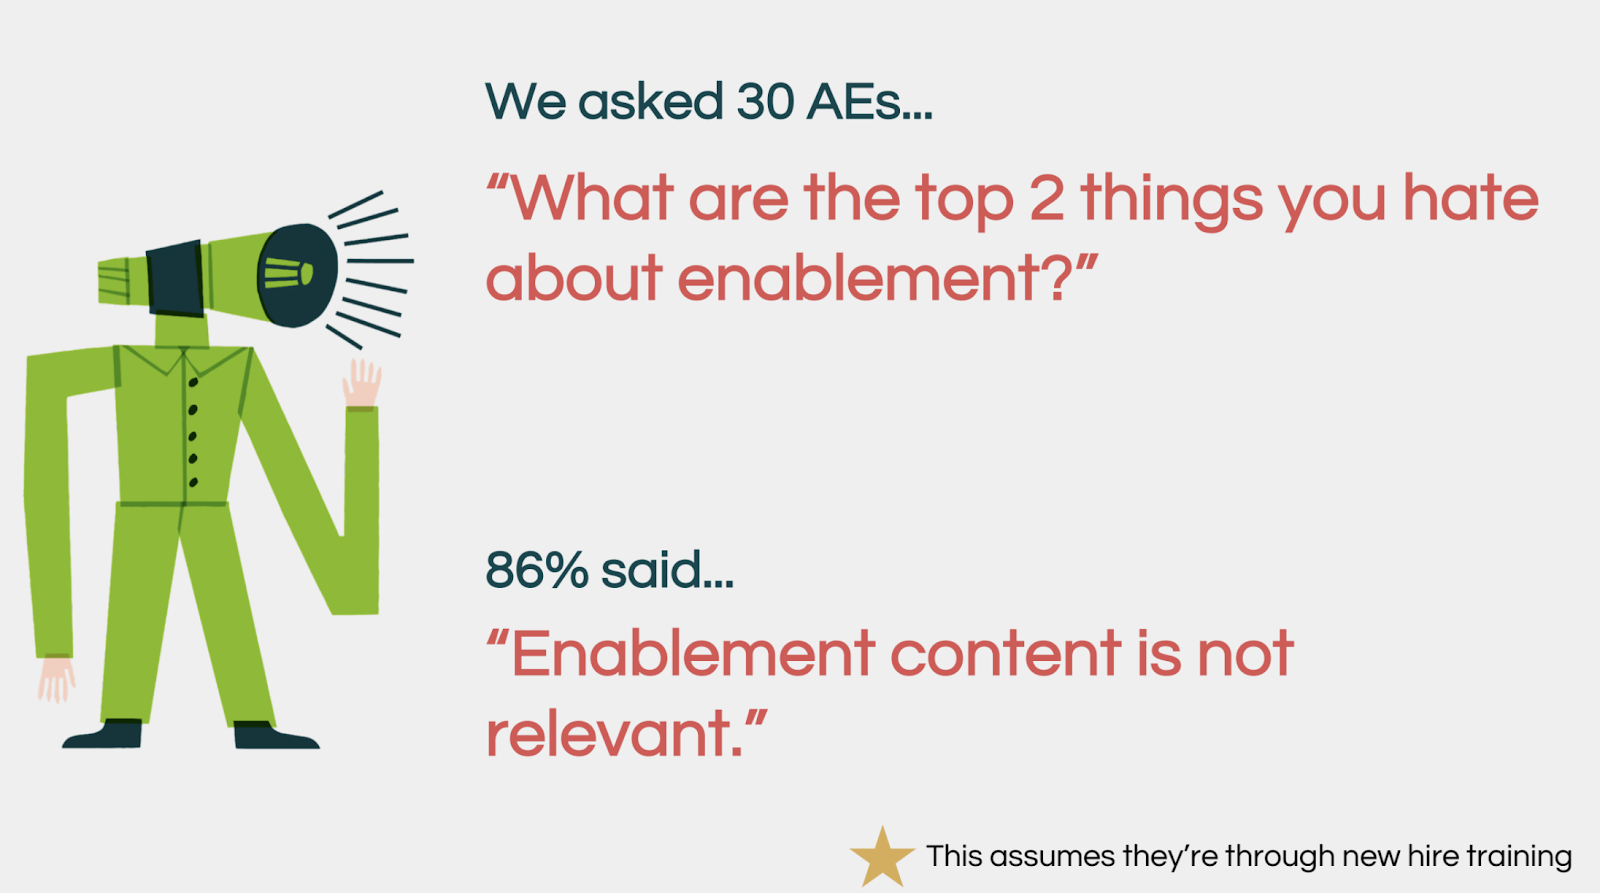 what are the top 2 things you have about enablement?